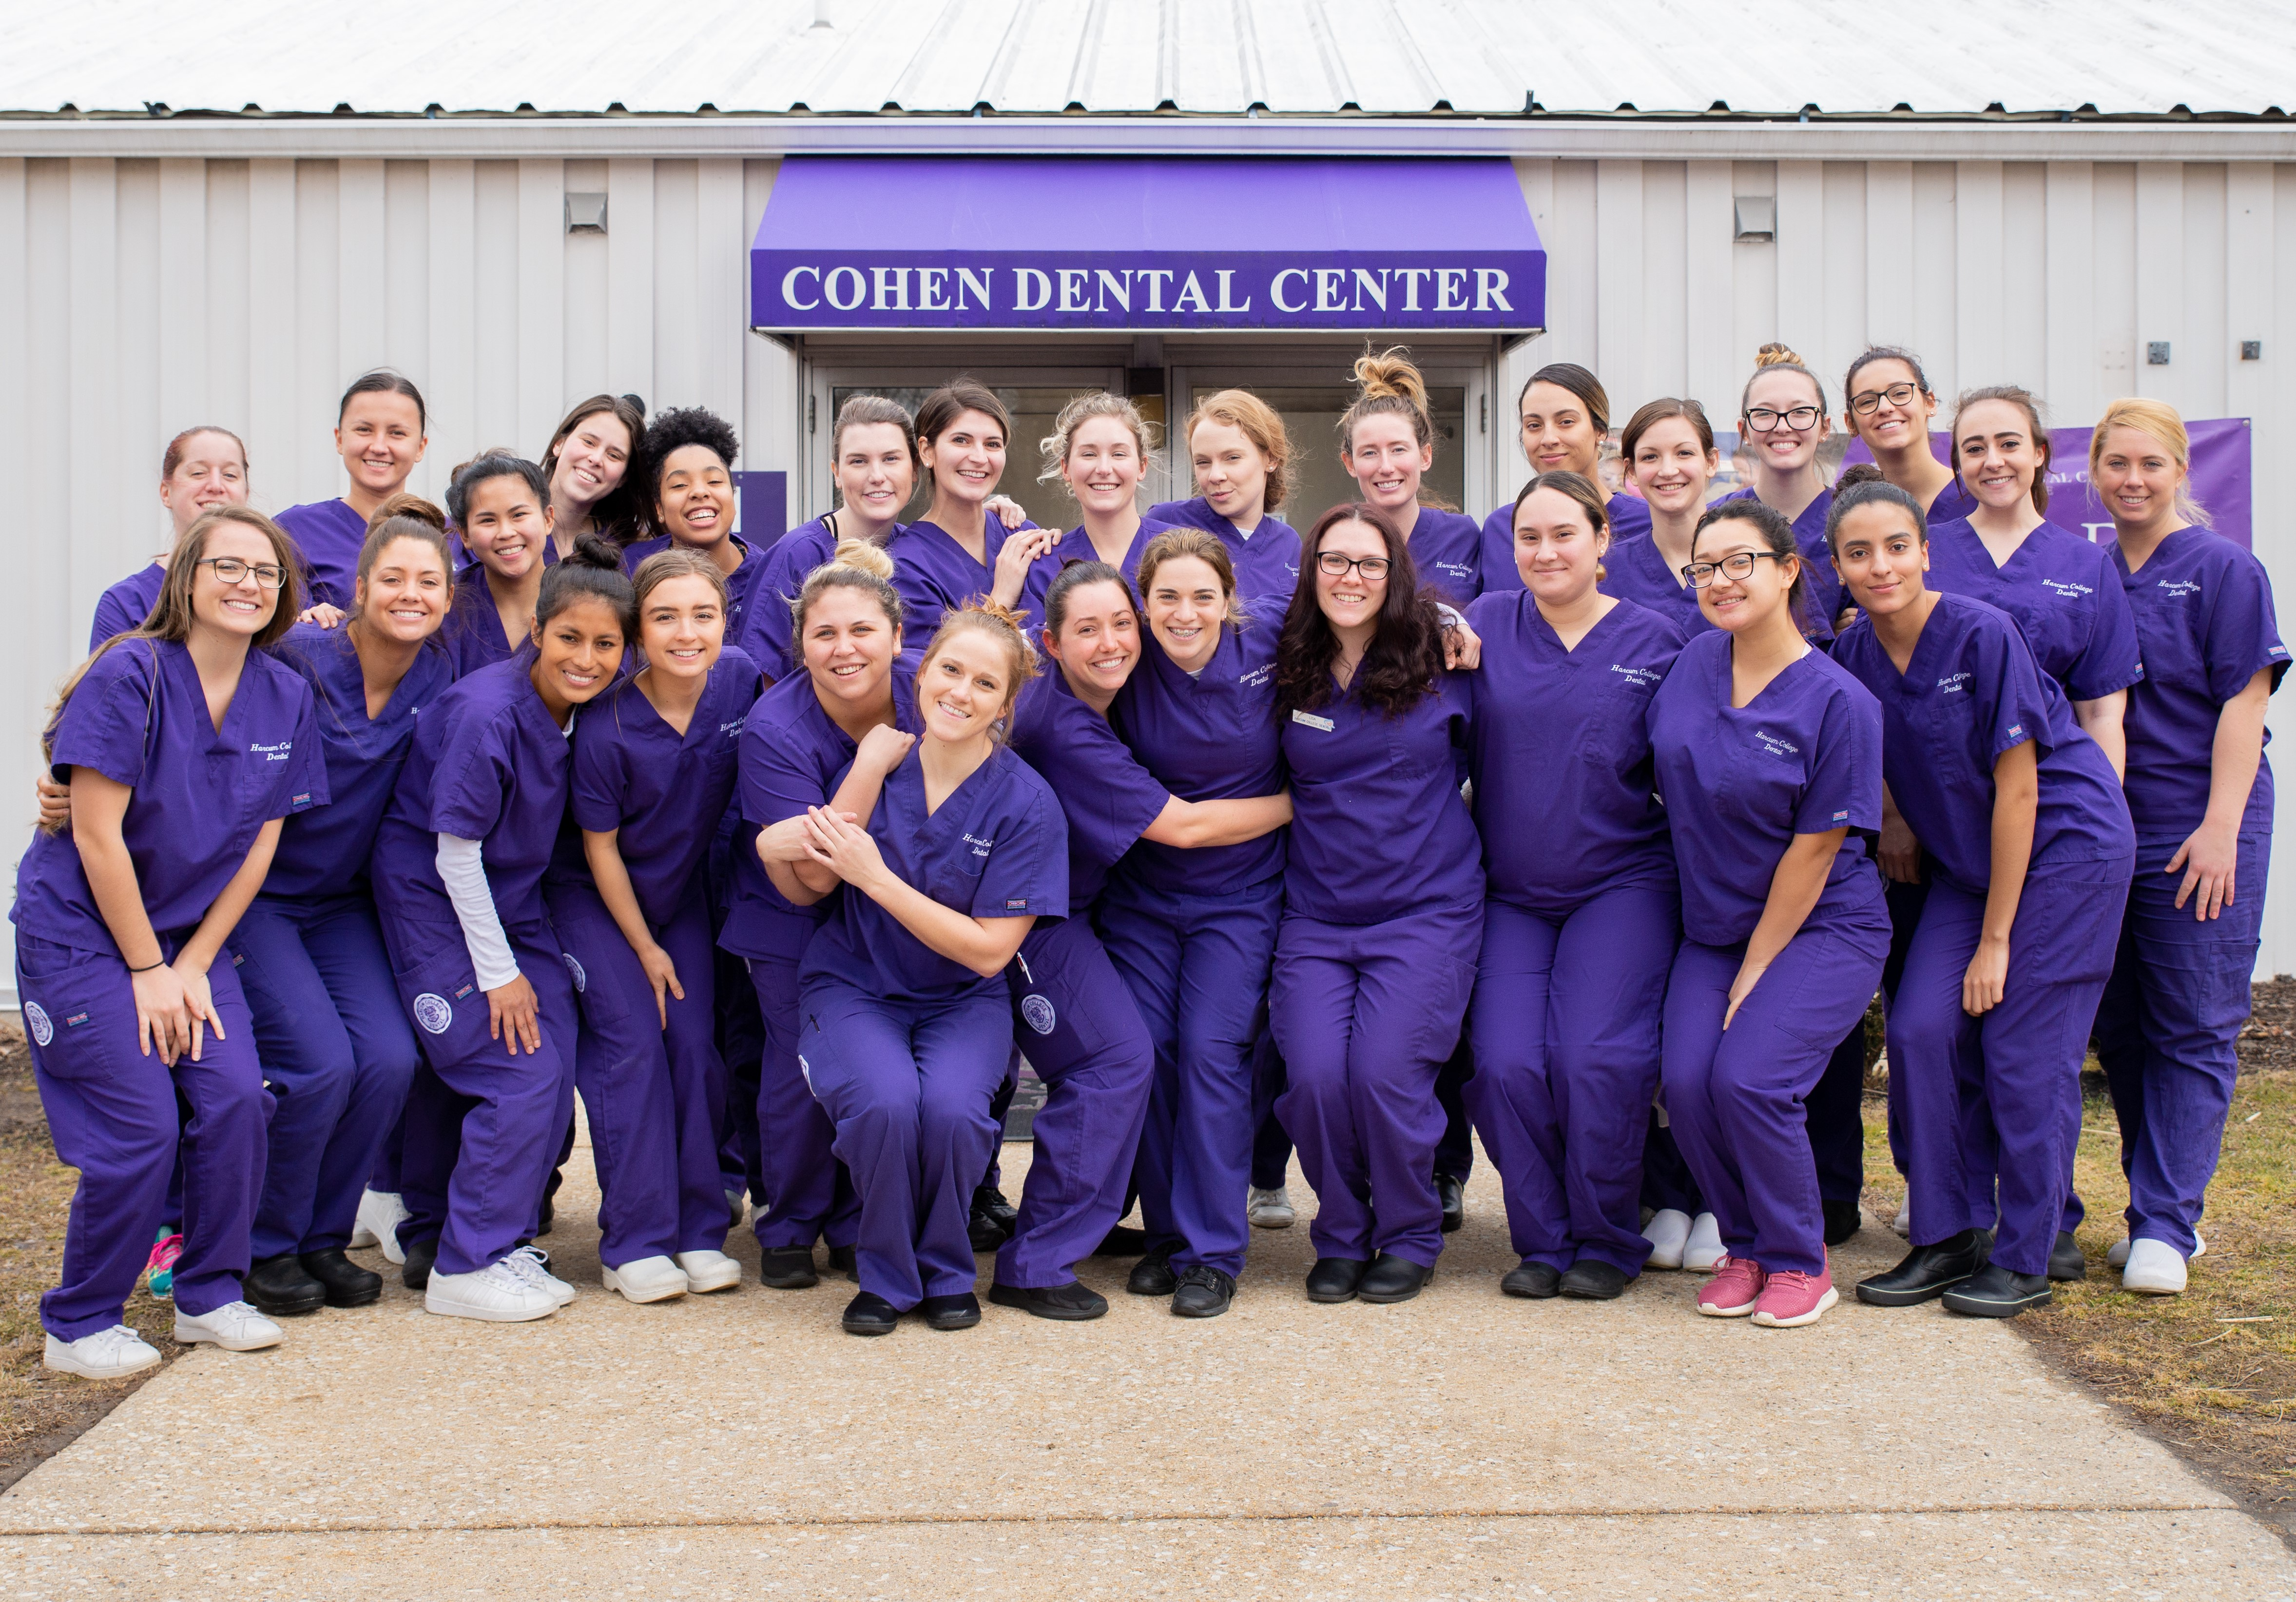 Sealant Day at Harcum College Means Free Dental Services for Children